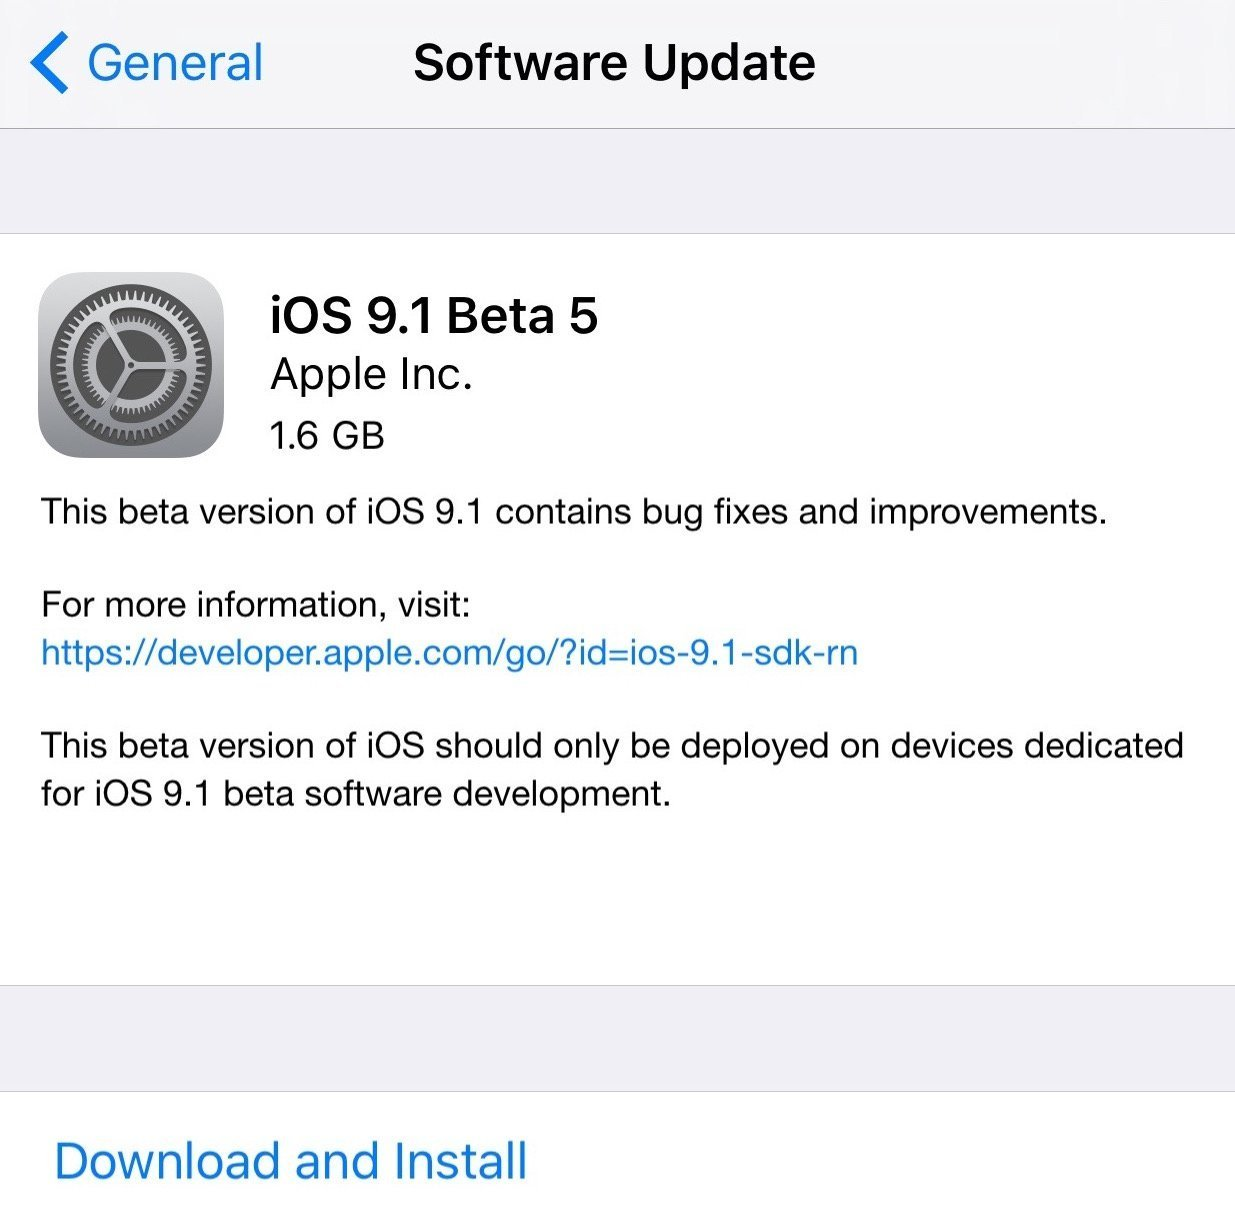 iOS 9.1 beta 5 released with bugs fixes and improvements